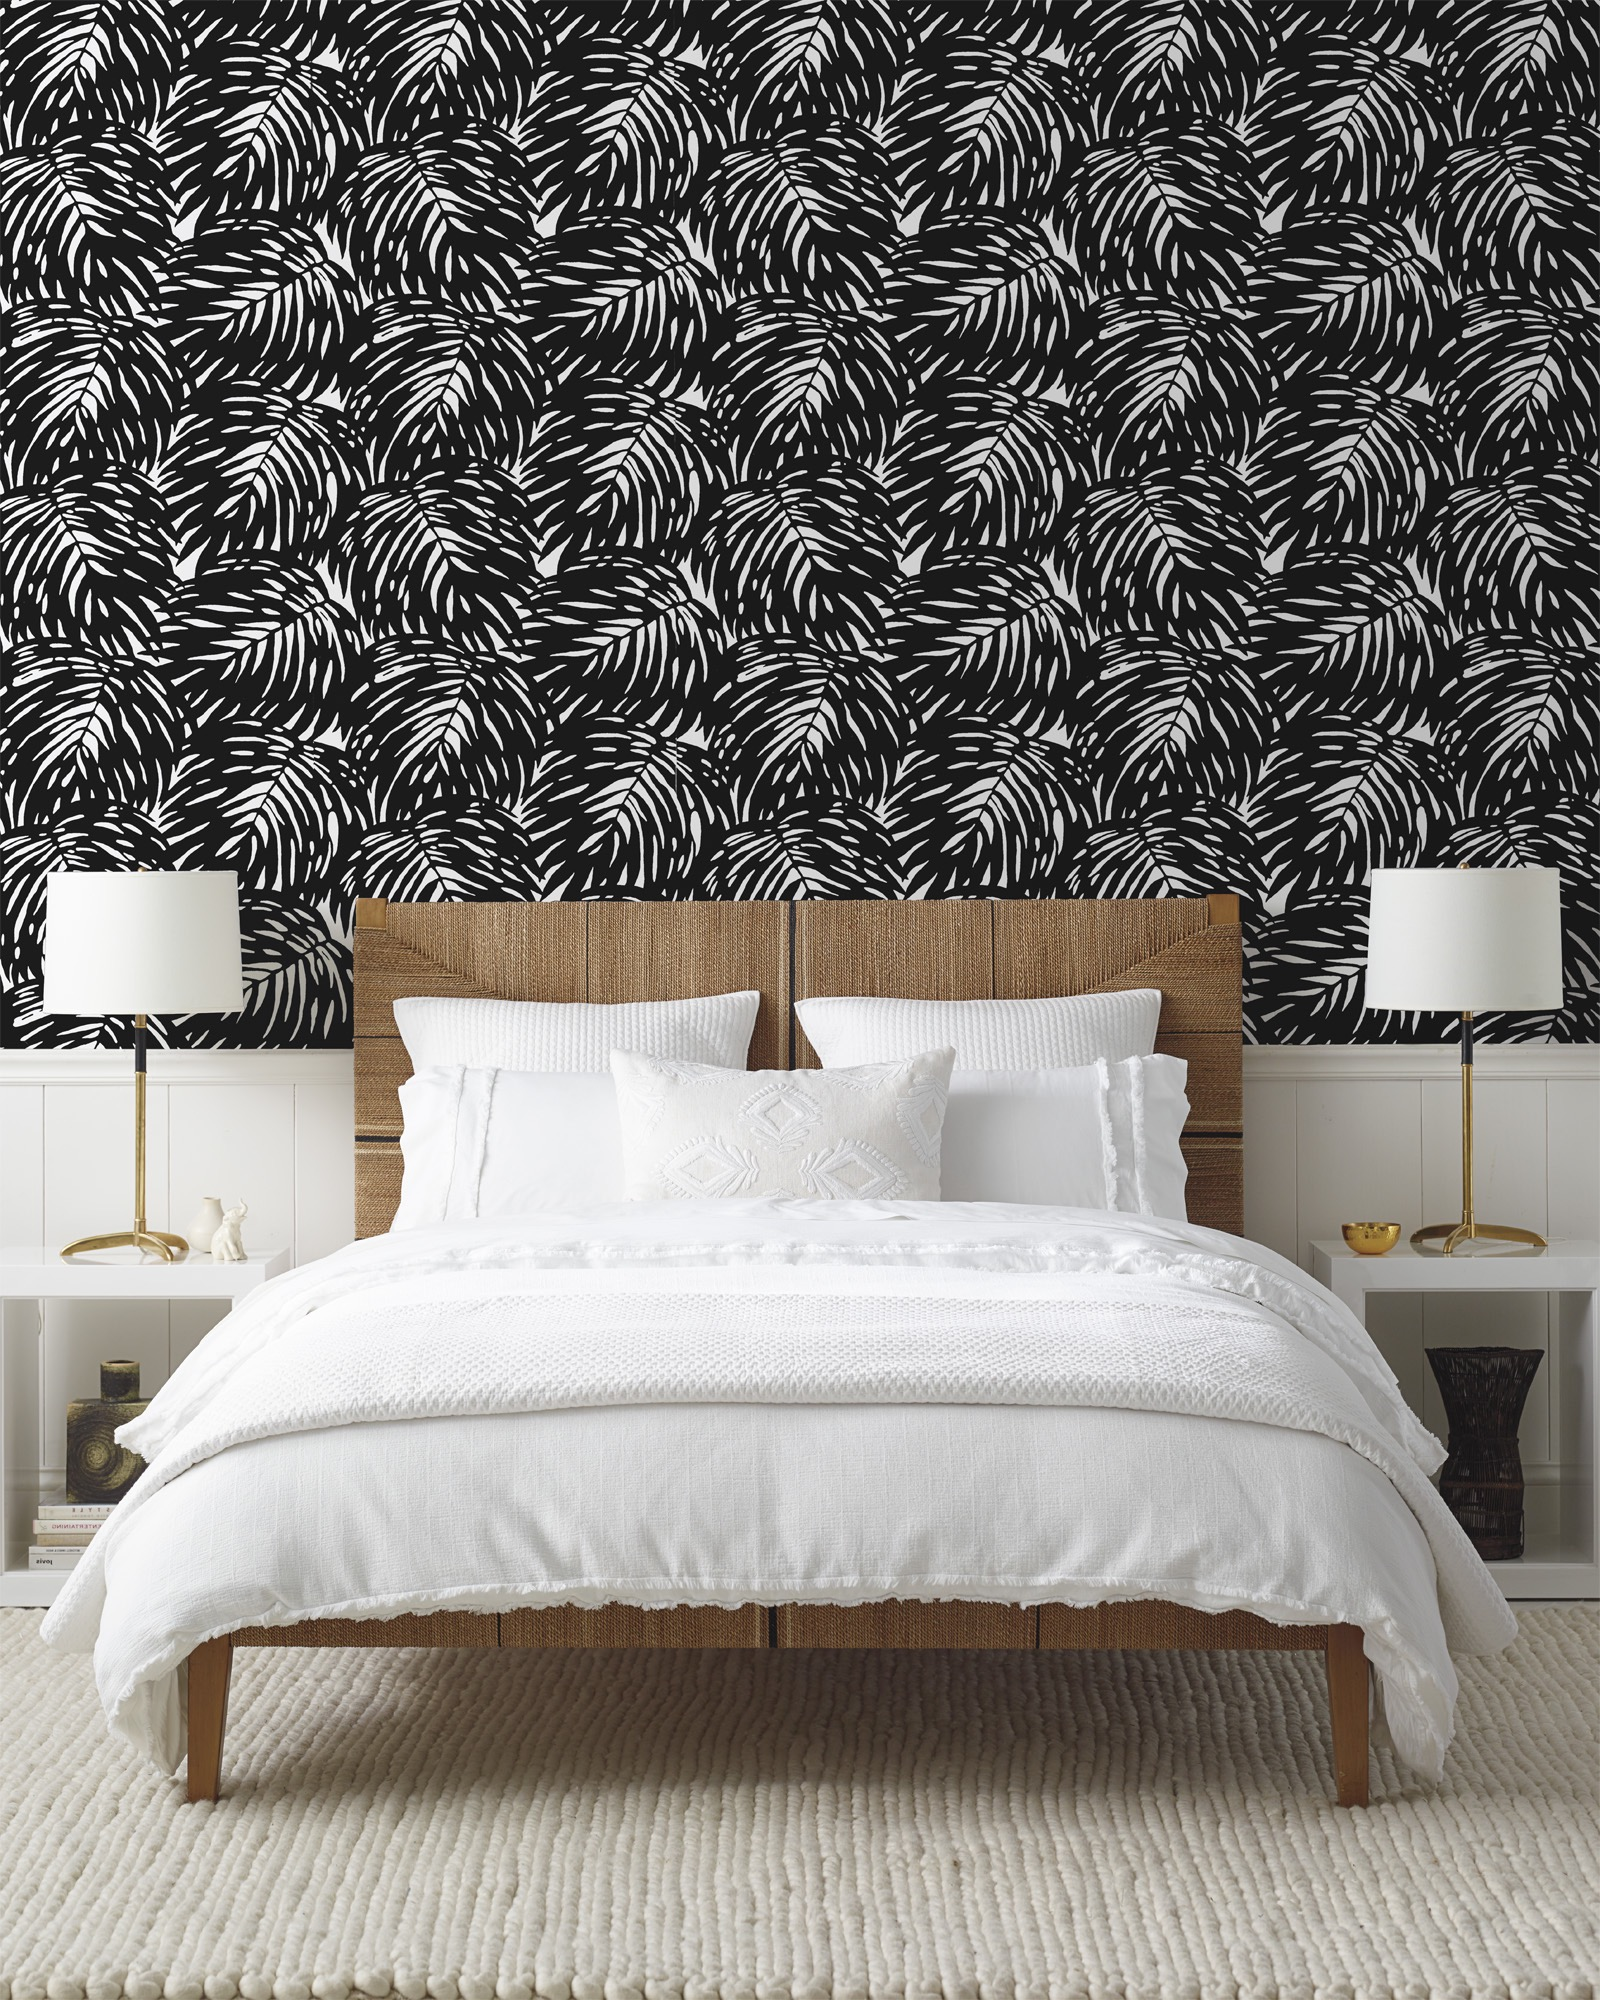 Stunning Braided Wool Rug For Contemporary Bedroom Decor With Black White Wallpaper (View 12 of 15)